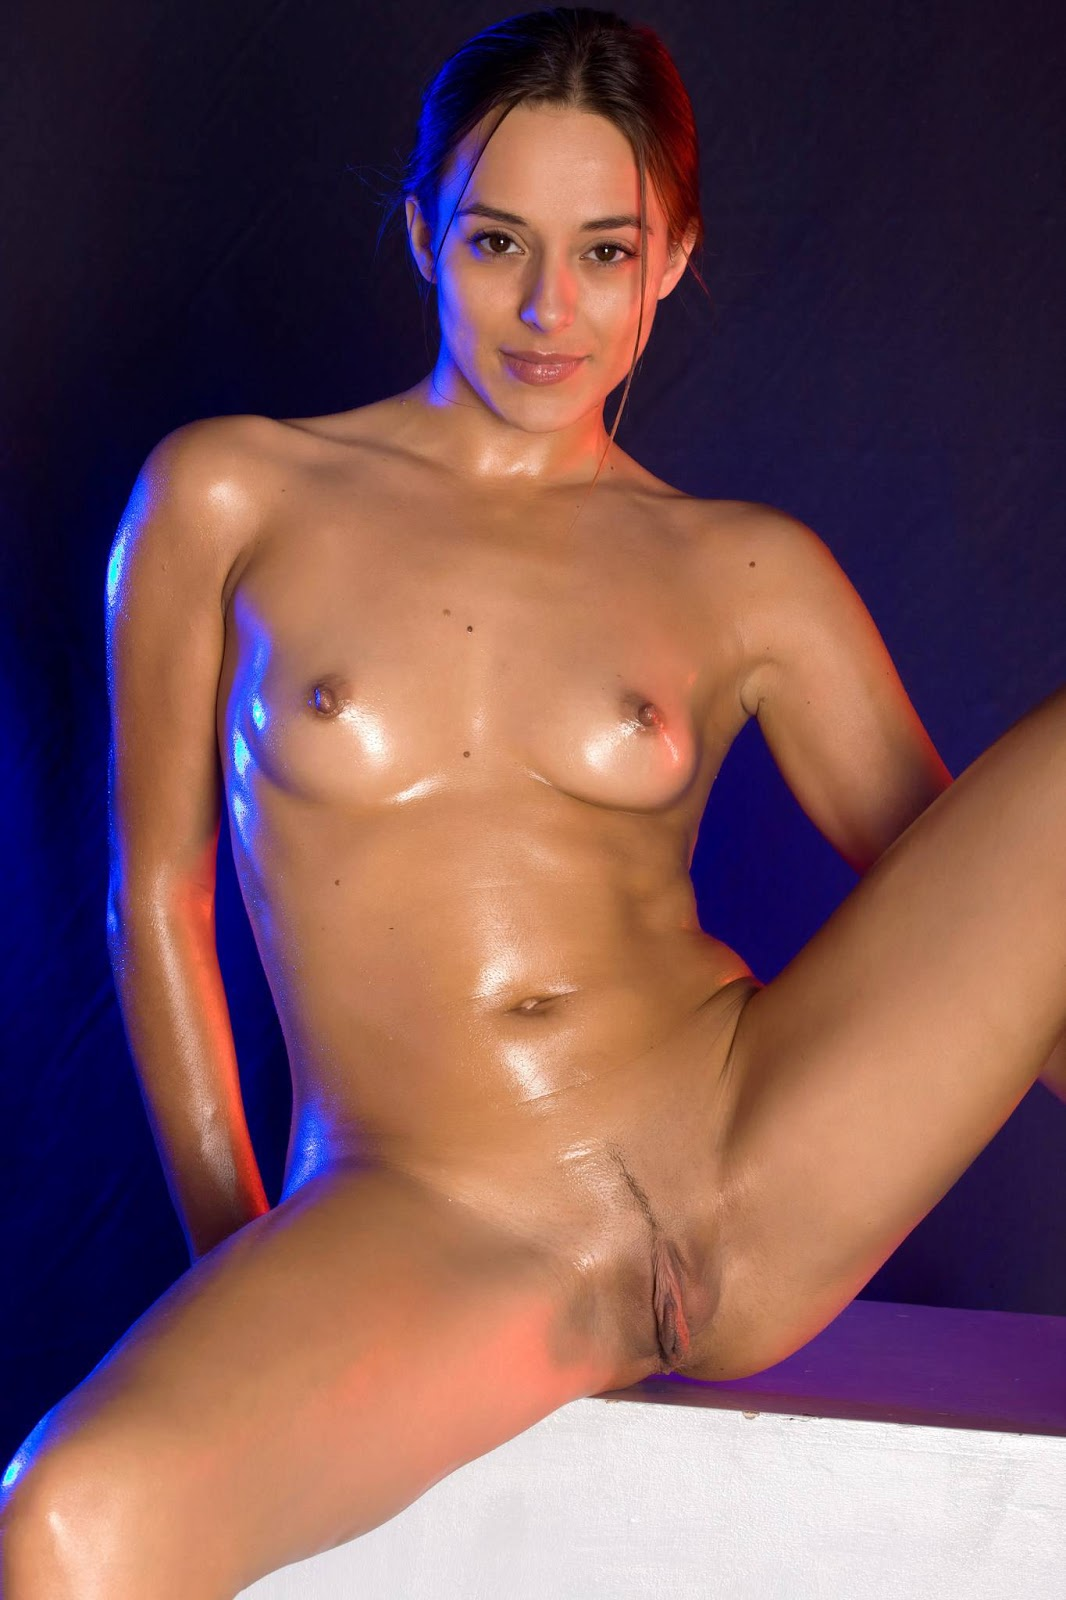 Nude Oiled Up Women